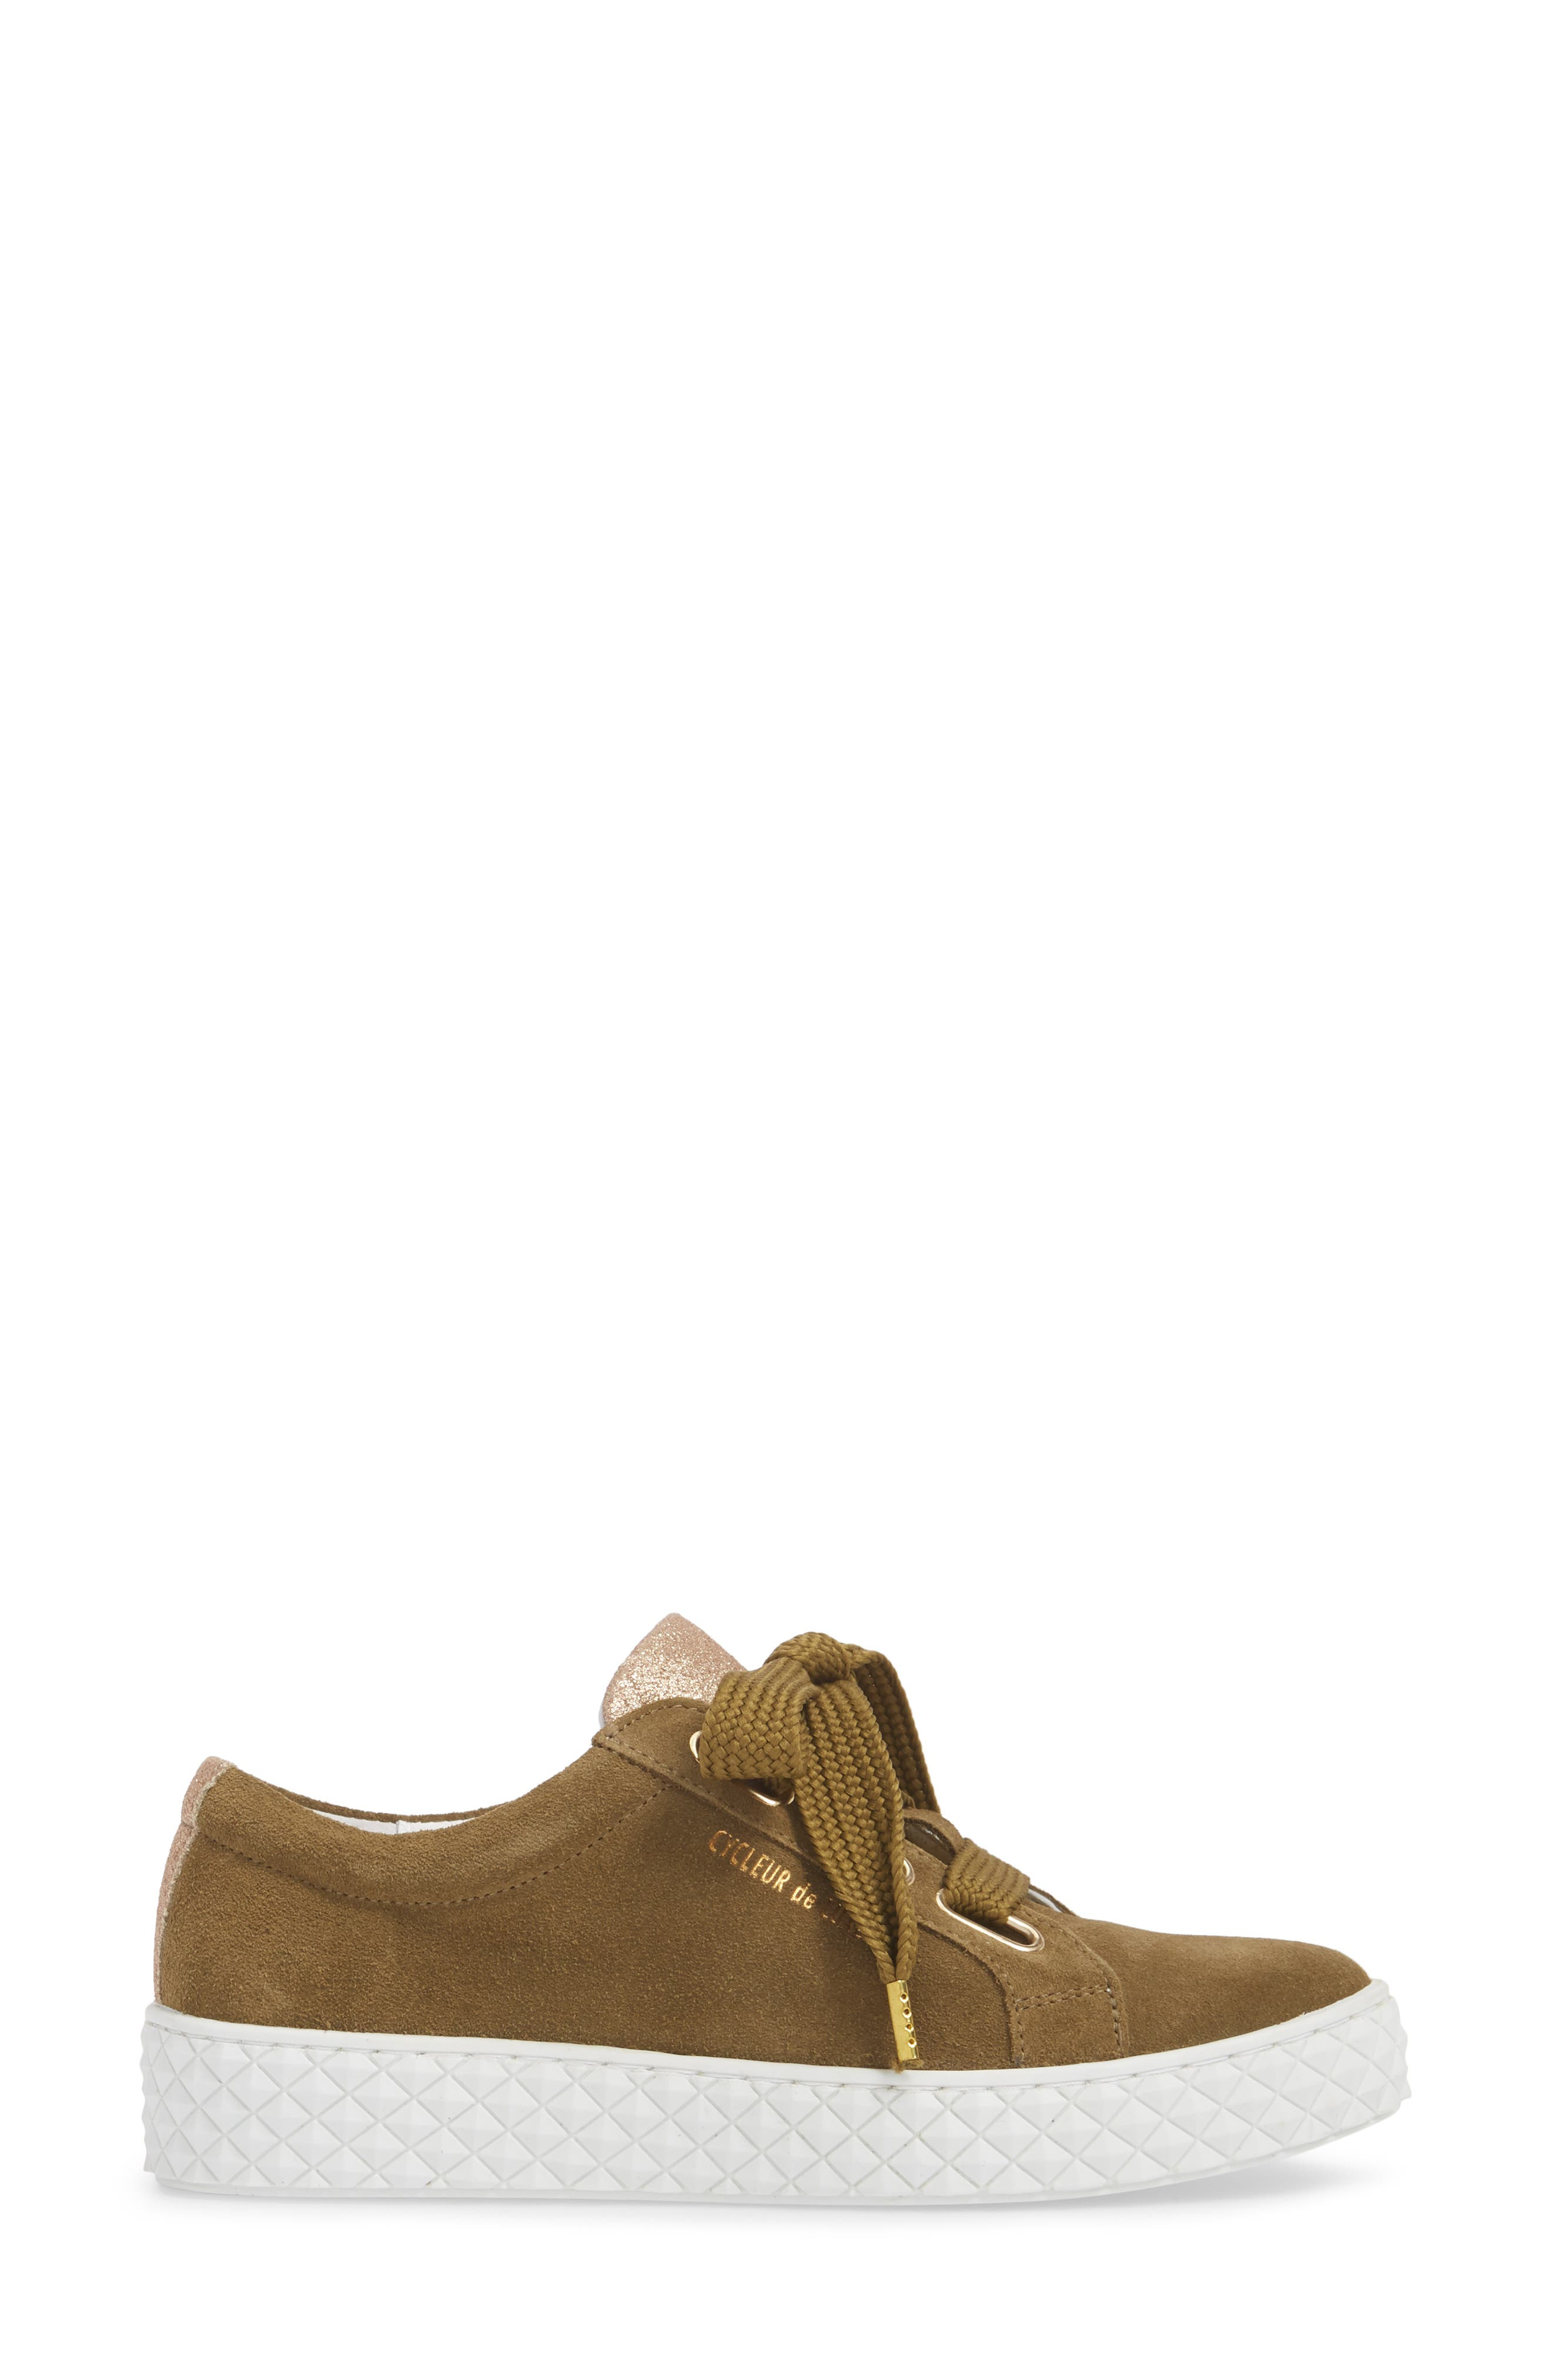 Acton III Sneaker,                             Alternate thumbnail 3, color,                             Military Green/ Gold Suede